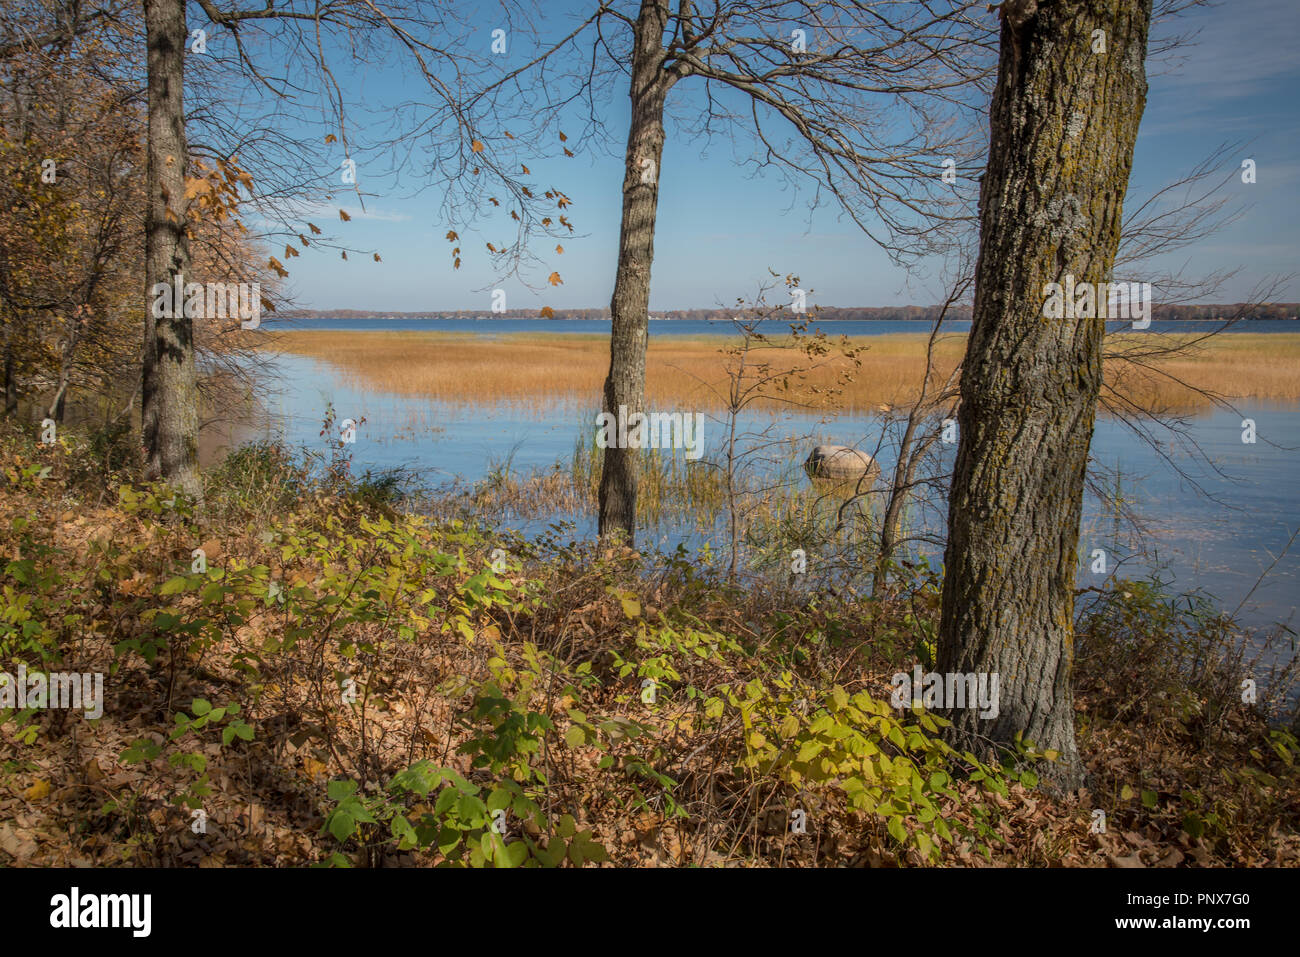 Lake with grasses seen through trees along the shore on a sunny fall day in Father Hennepin State Park in northern Minnesota - Stock Image